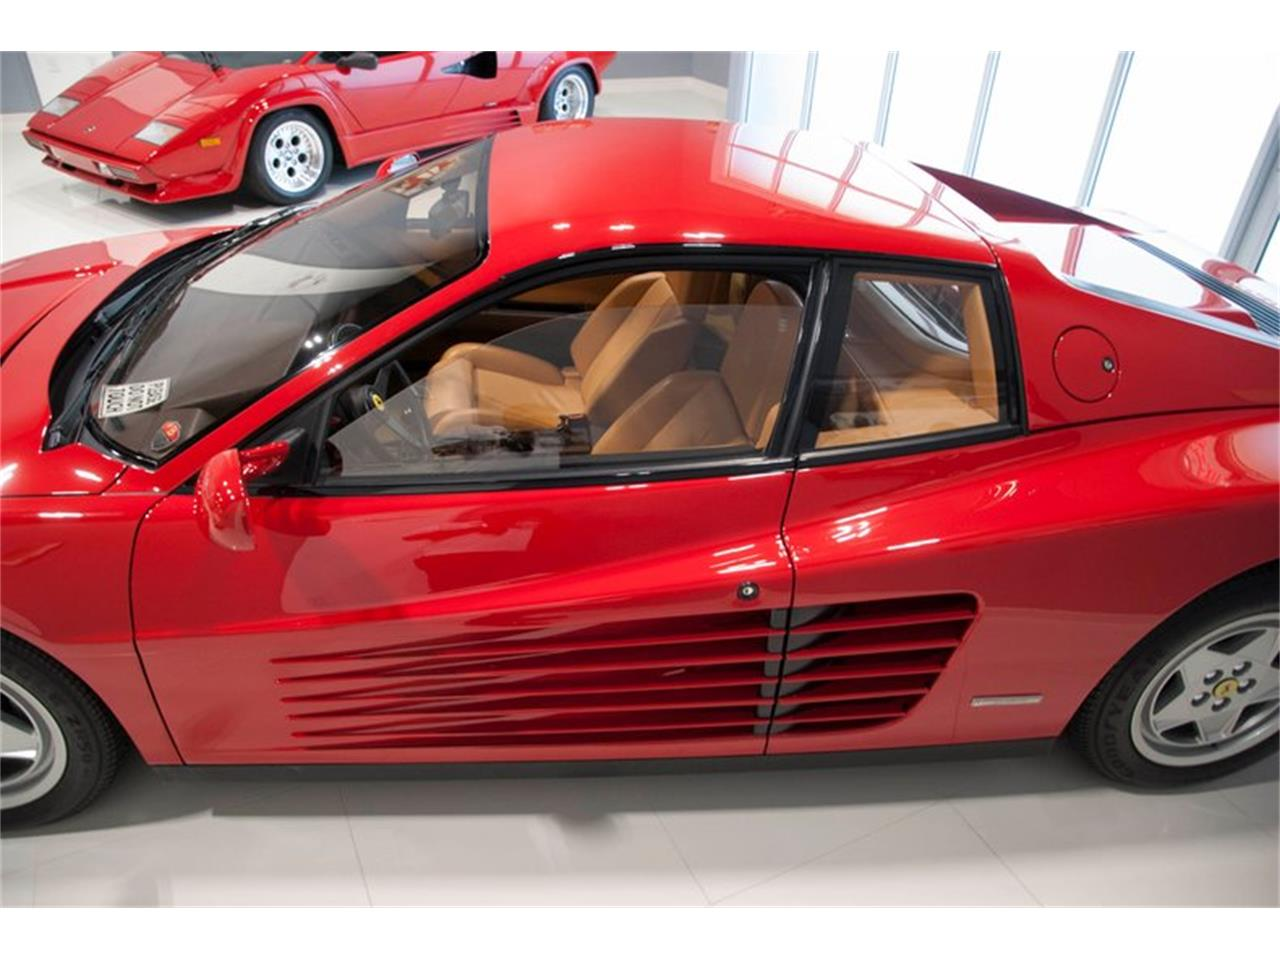 Large Picture of 1991 Ferrari Testarossa located in Florida - $249,900.00 - P9H3